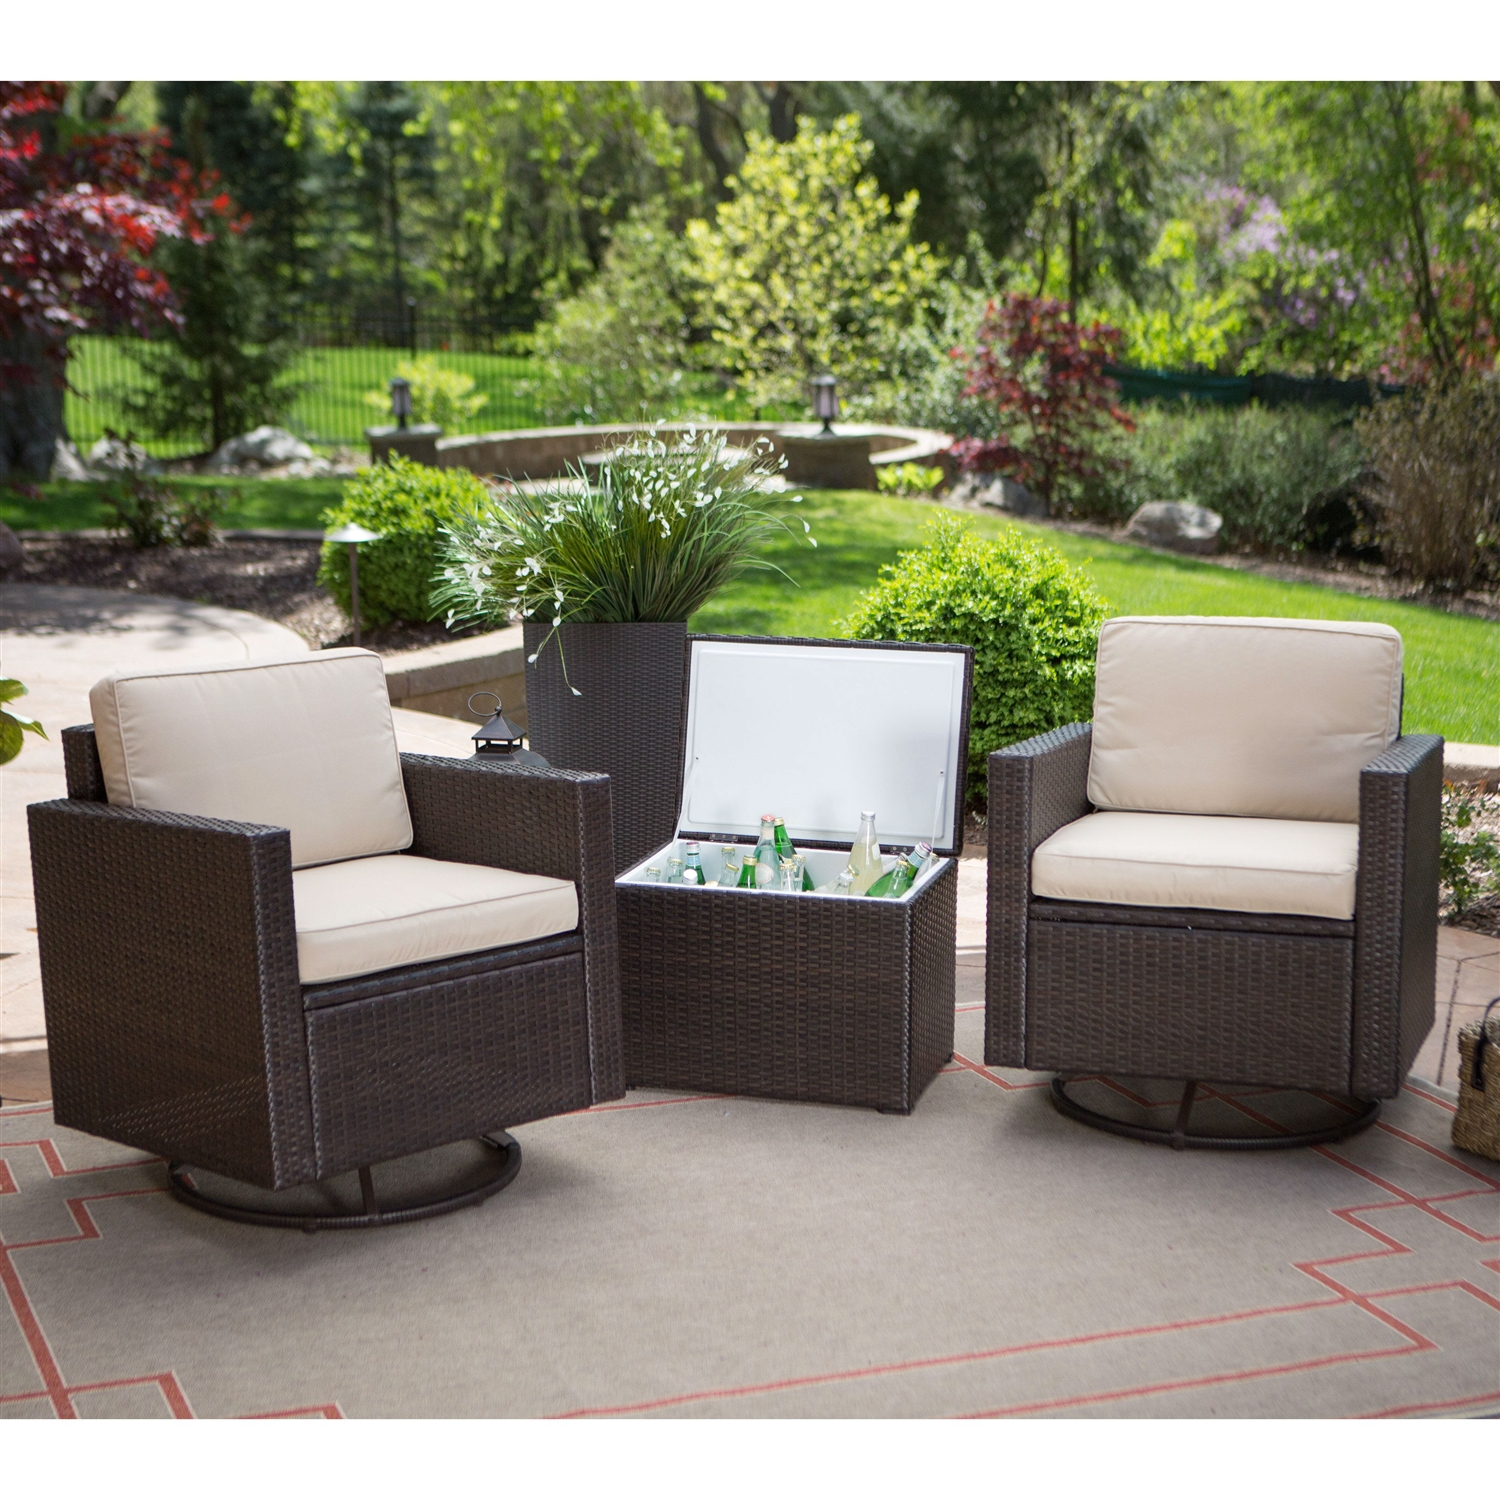 Outdoor Wicker Resin 3 Piece Patio Furniture Set With 2 Chairs And Cooler Storage Side